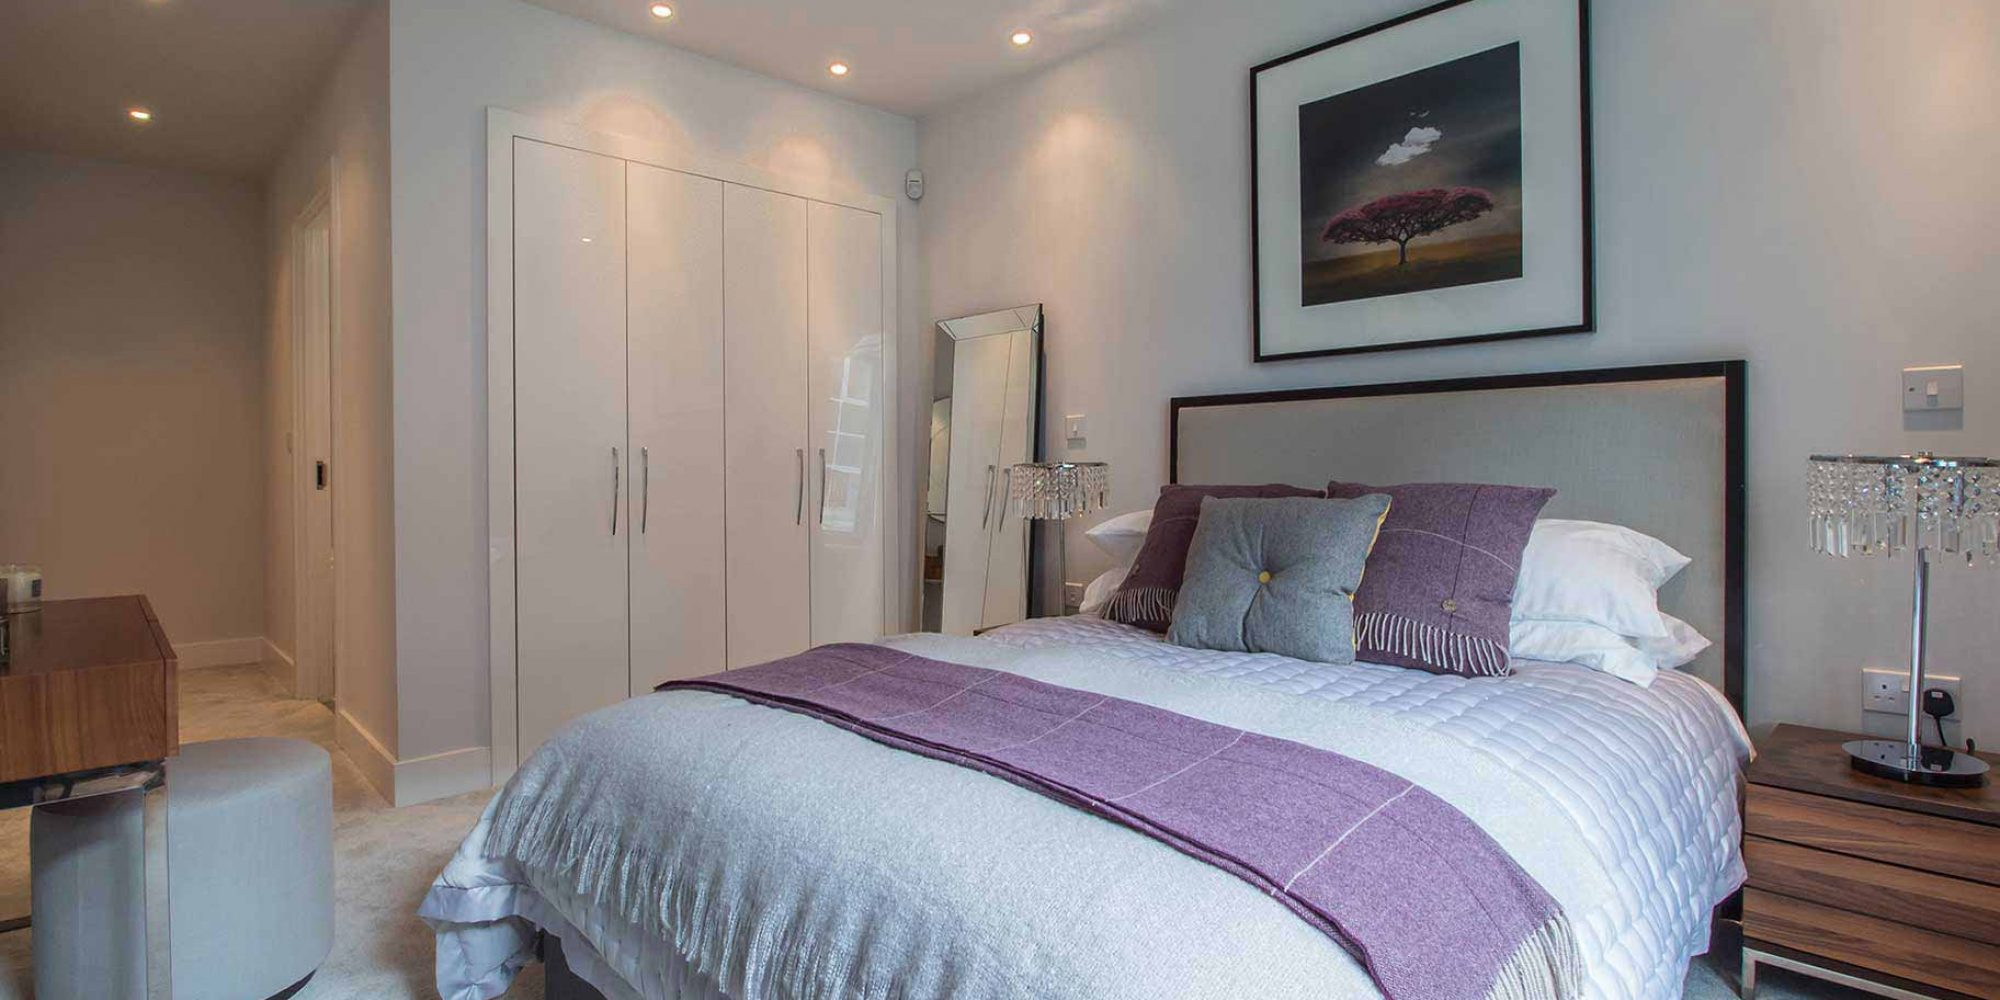 Bedroom with fitted wardrobes